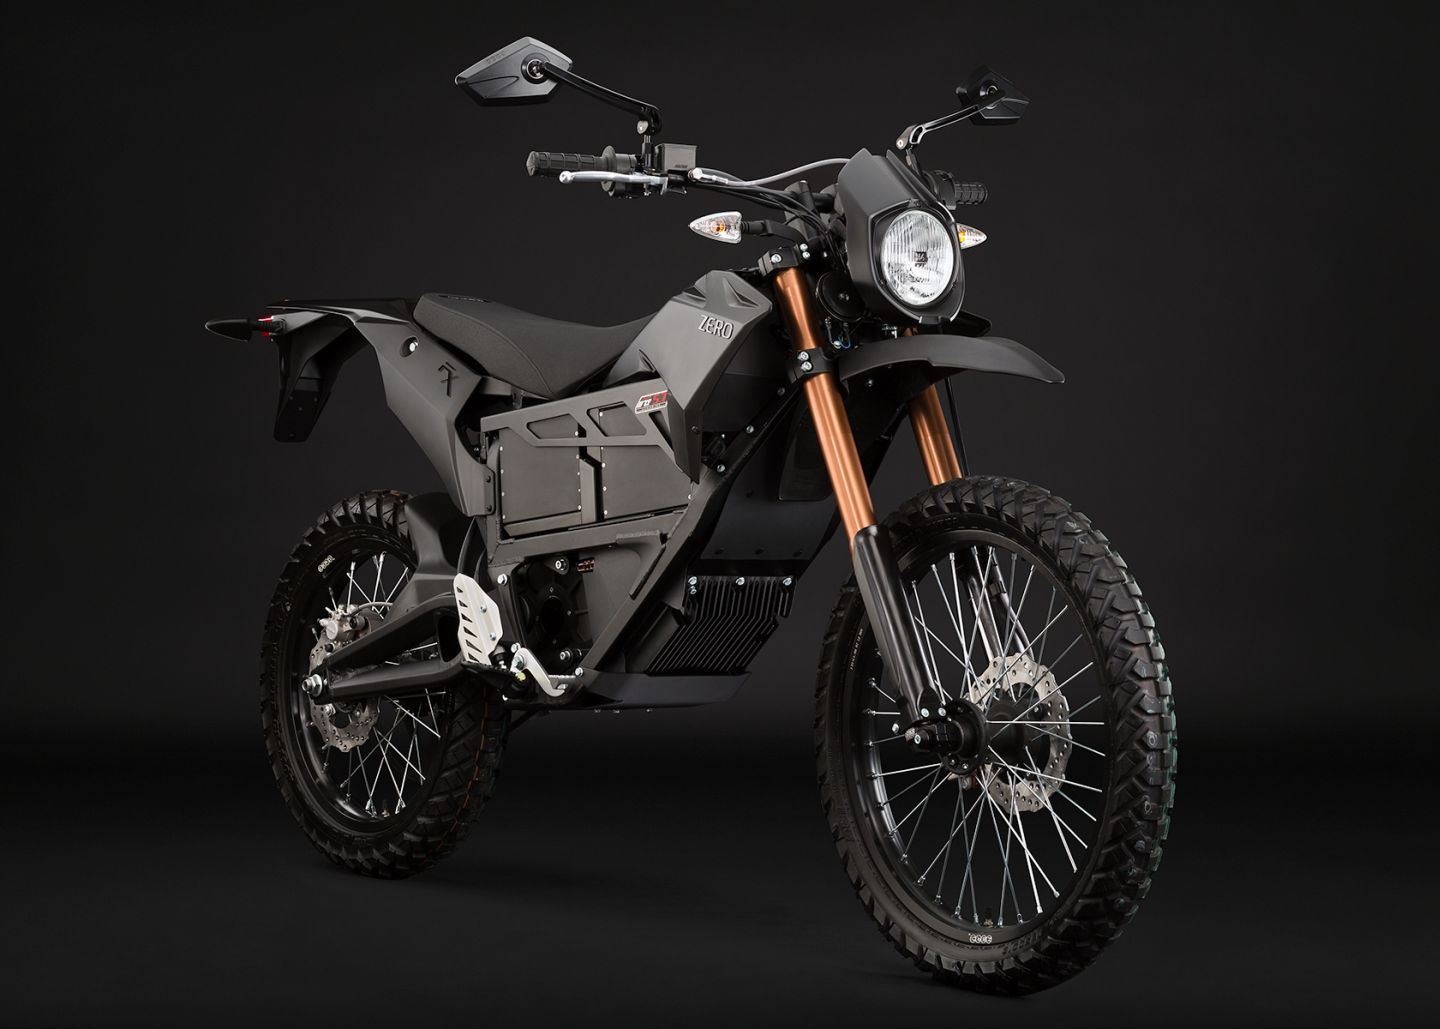 2013 Zero Fx All New Electric Bike Pricing Photo Gallery 50166 on Force Mx Acceleration